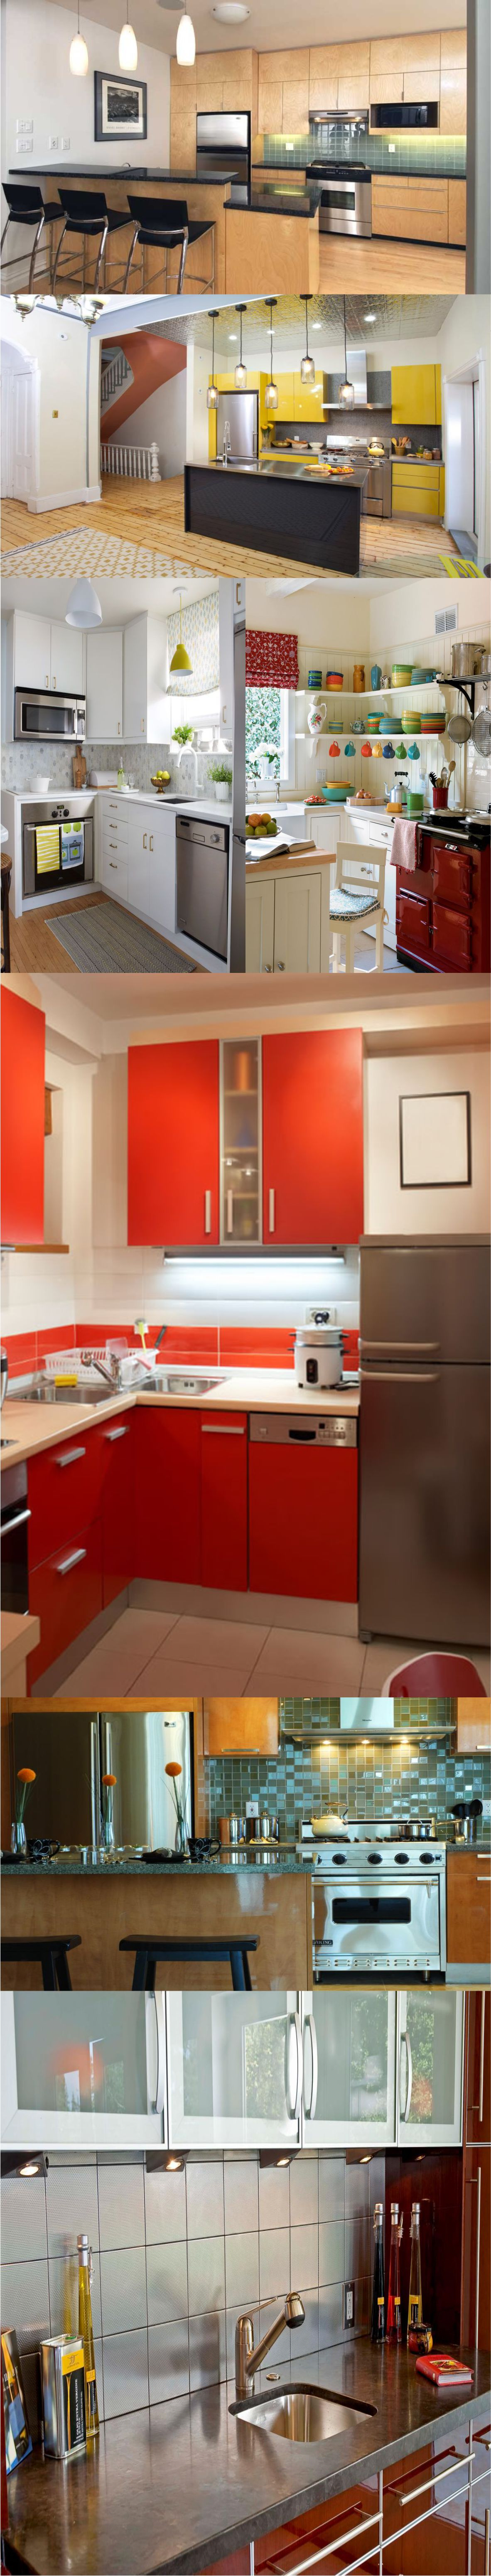 livingurbanscape ideas cabinet org units kitchen design modern also cabinets small with l